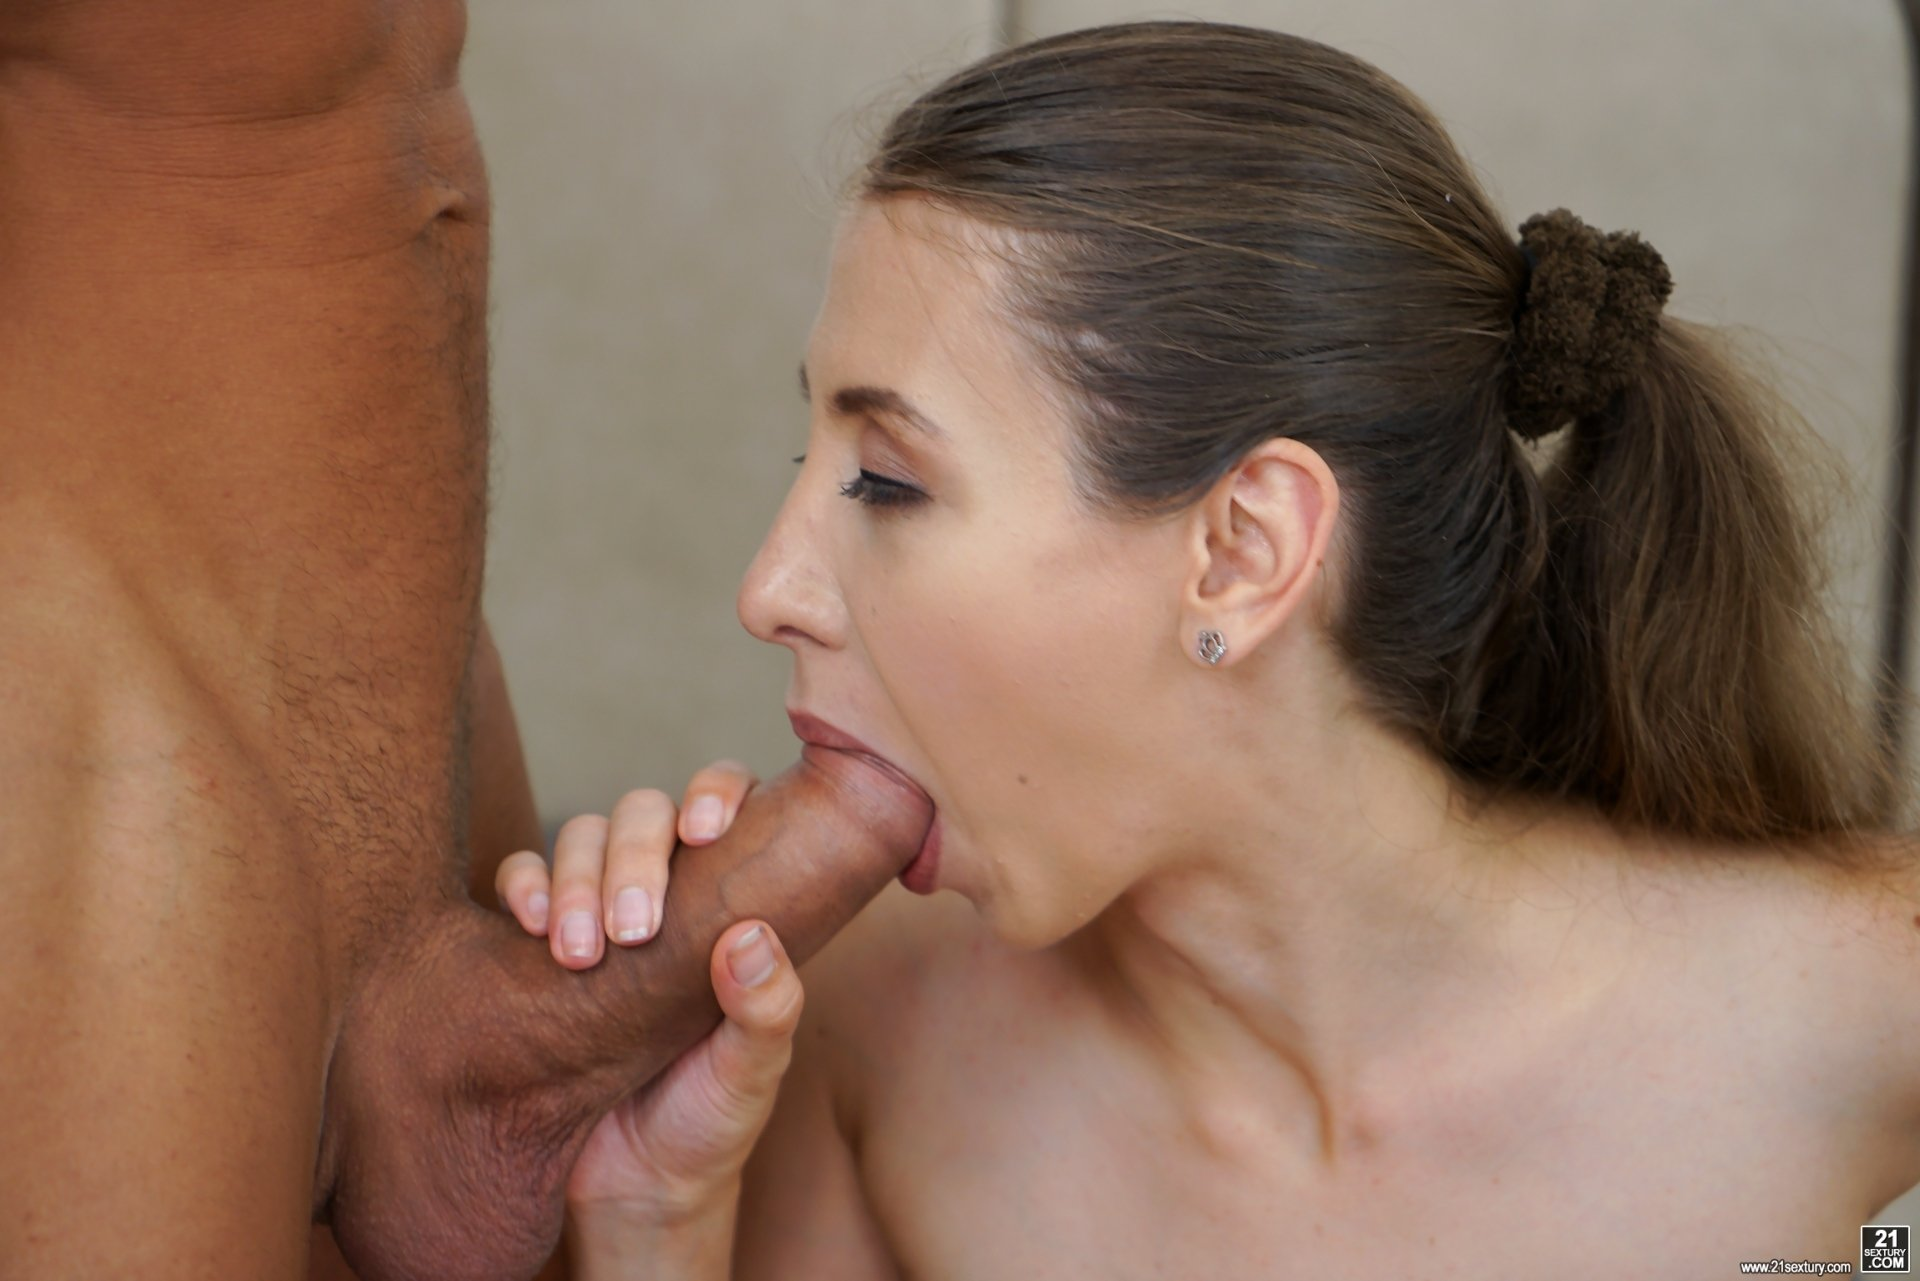 Big dick anal sex pictures #10